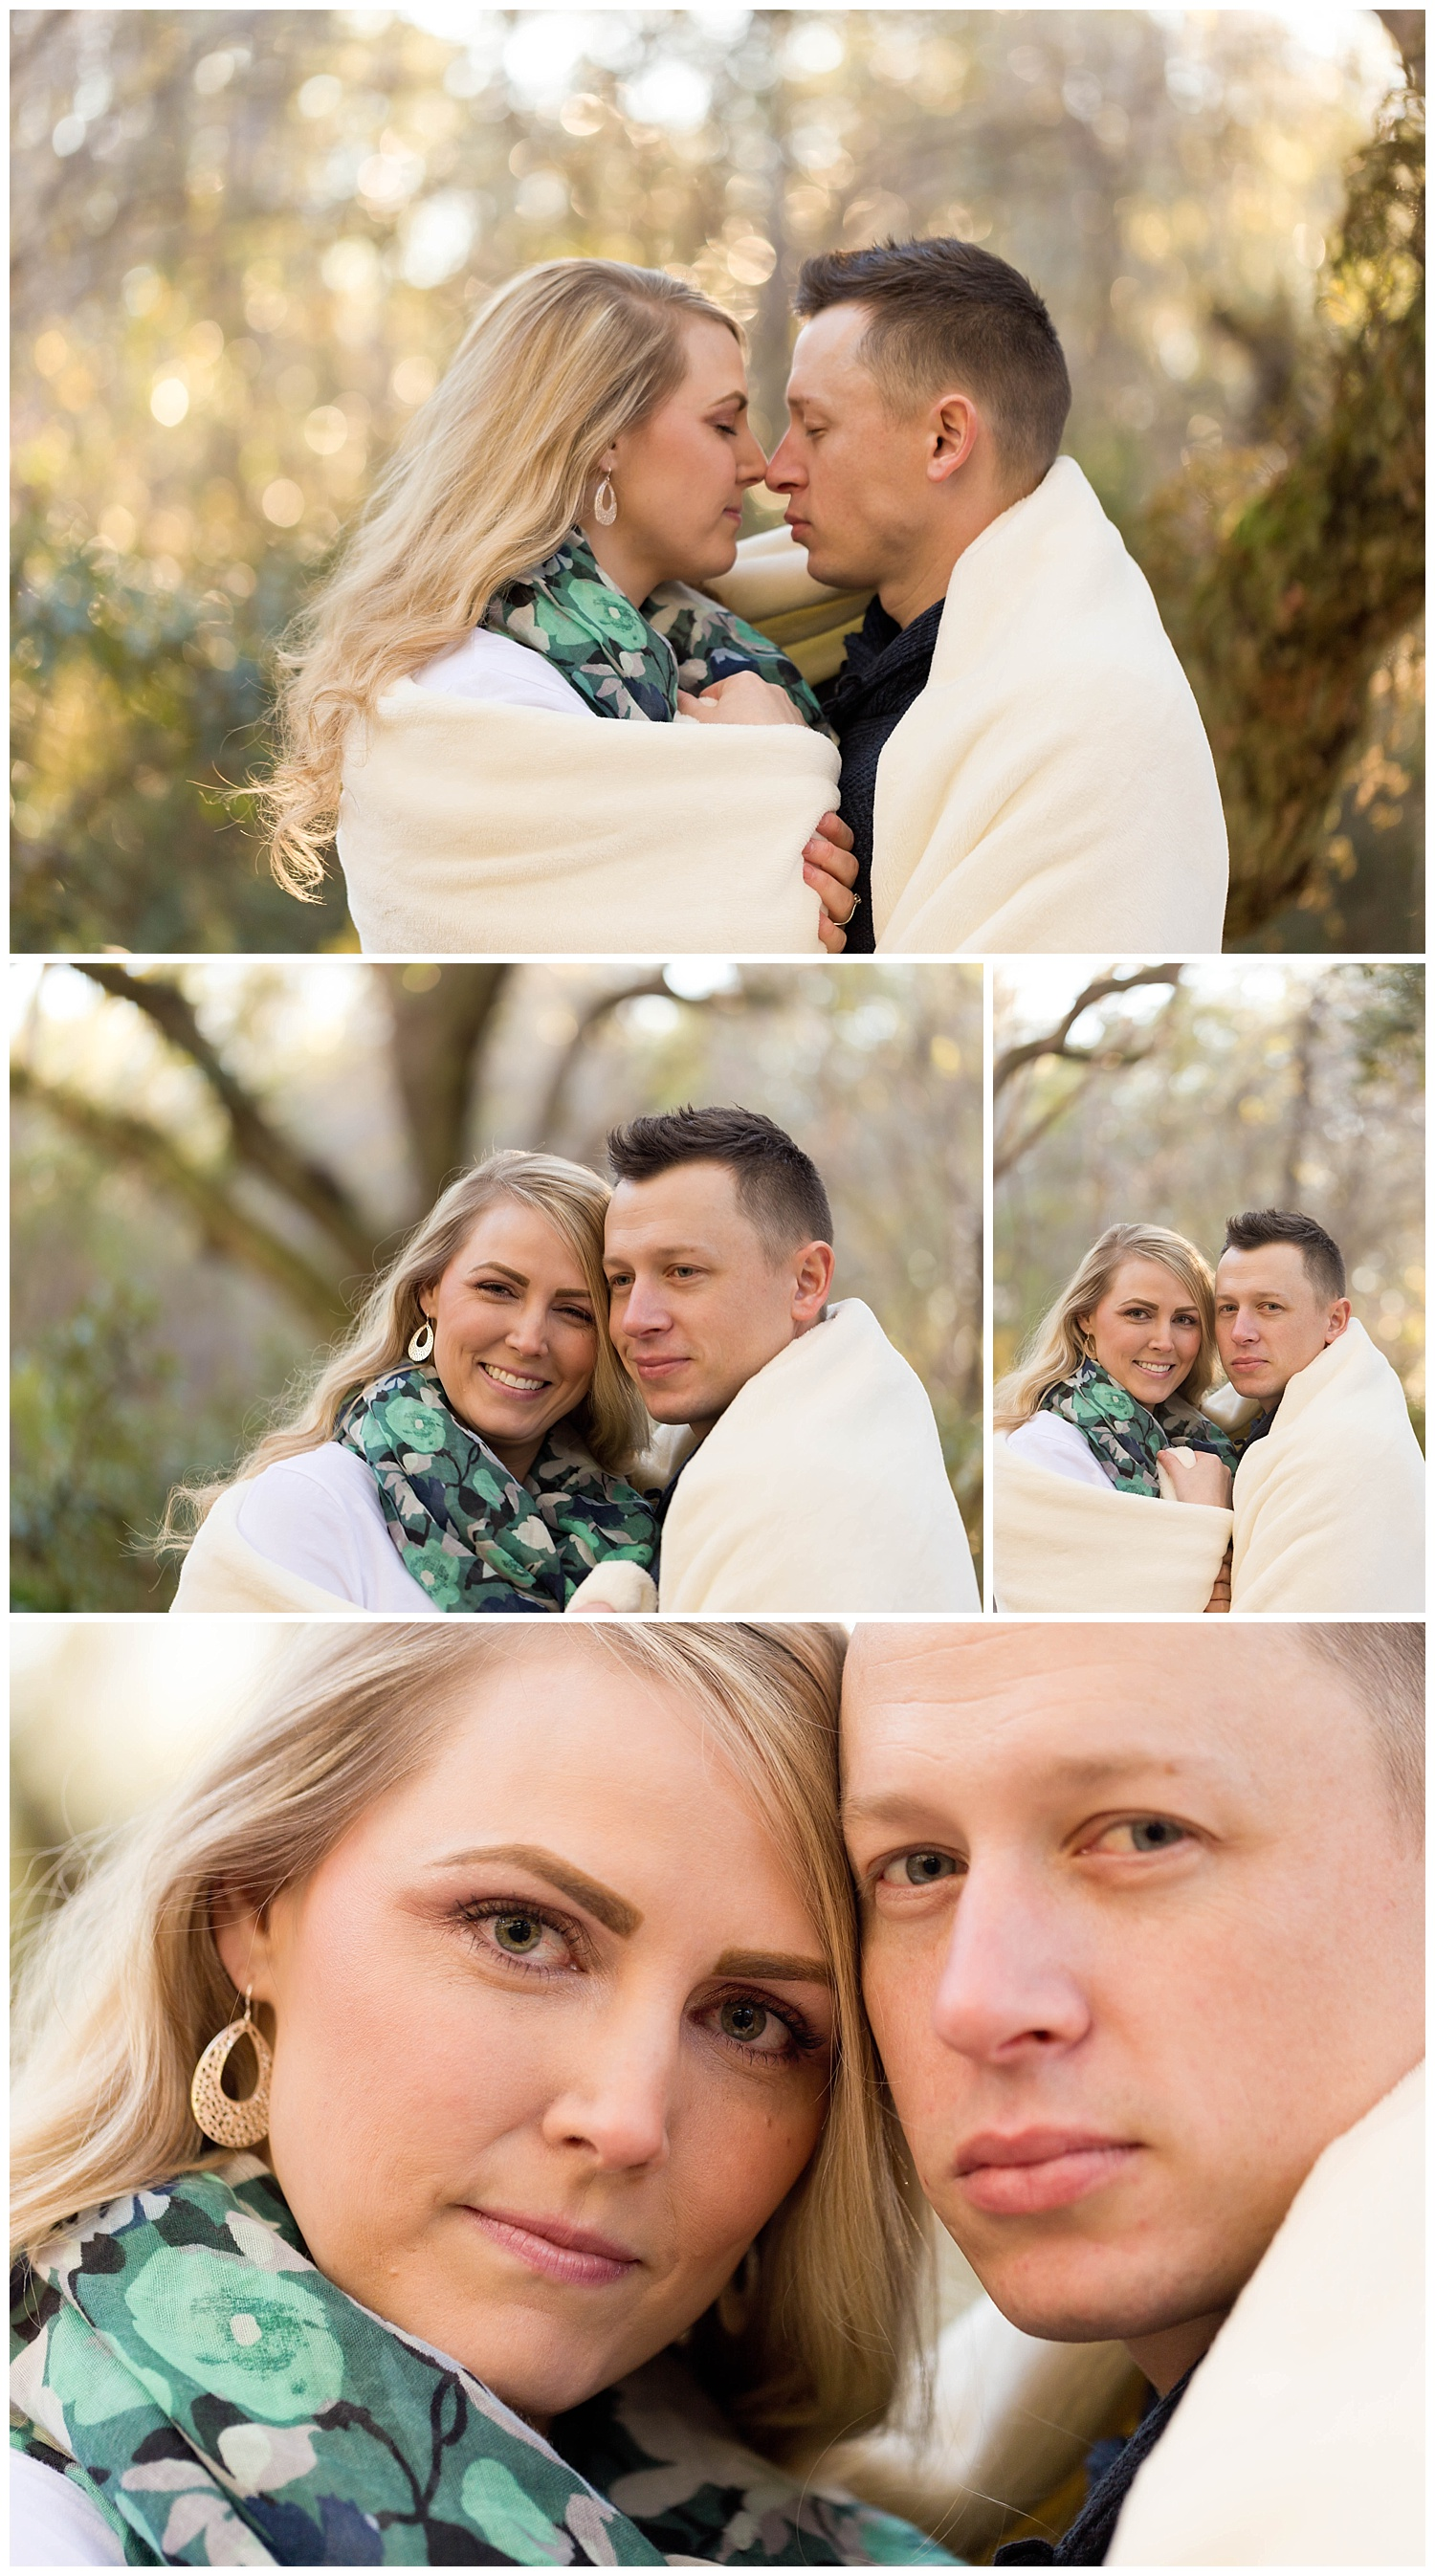 winter engagement photos with couple snuggled in warm blanket (Ocean Springs, Mississippi engagement photographer)